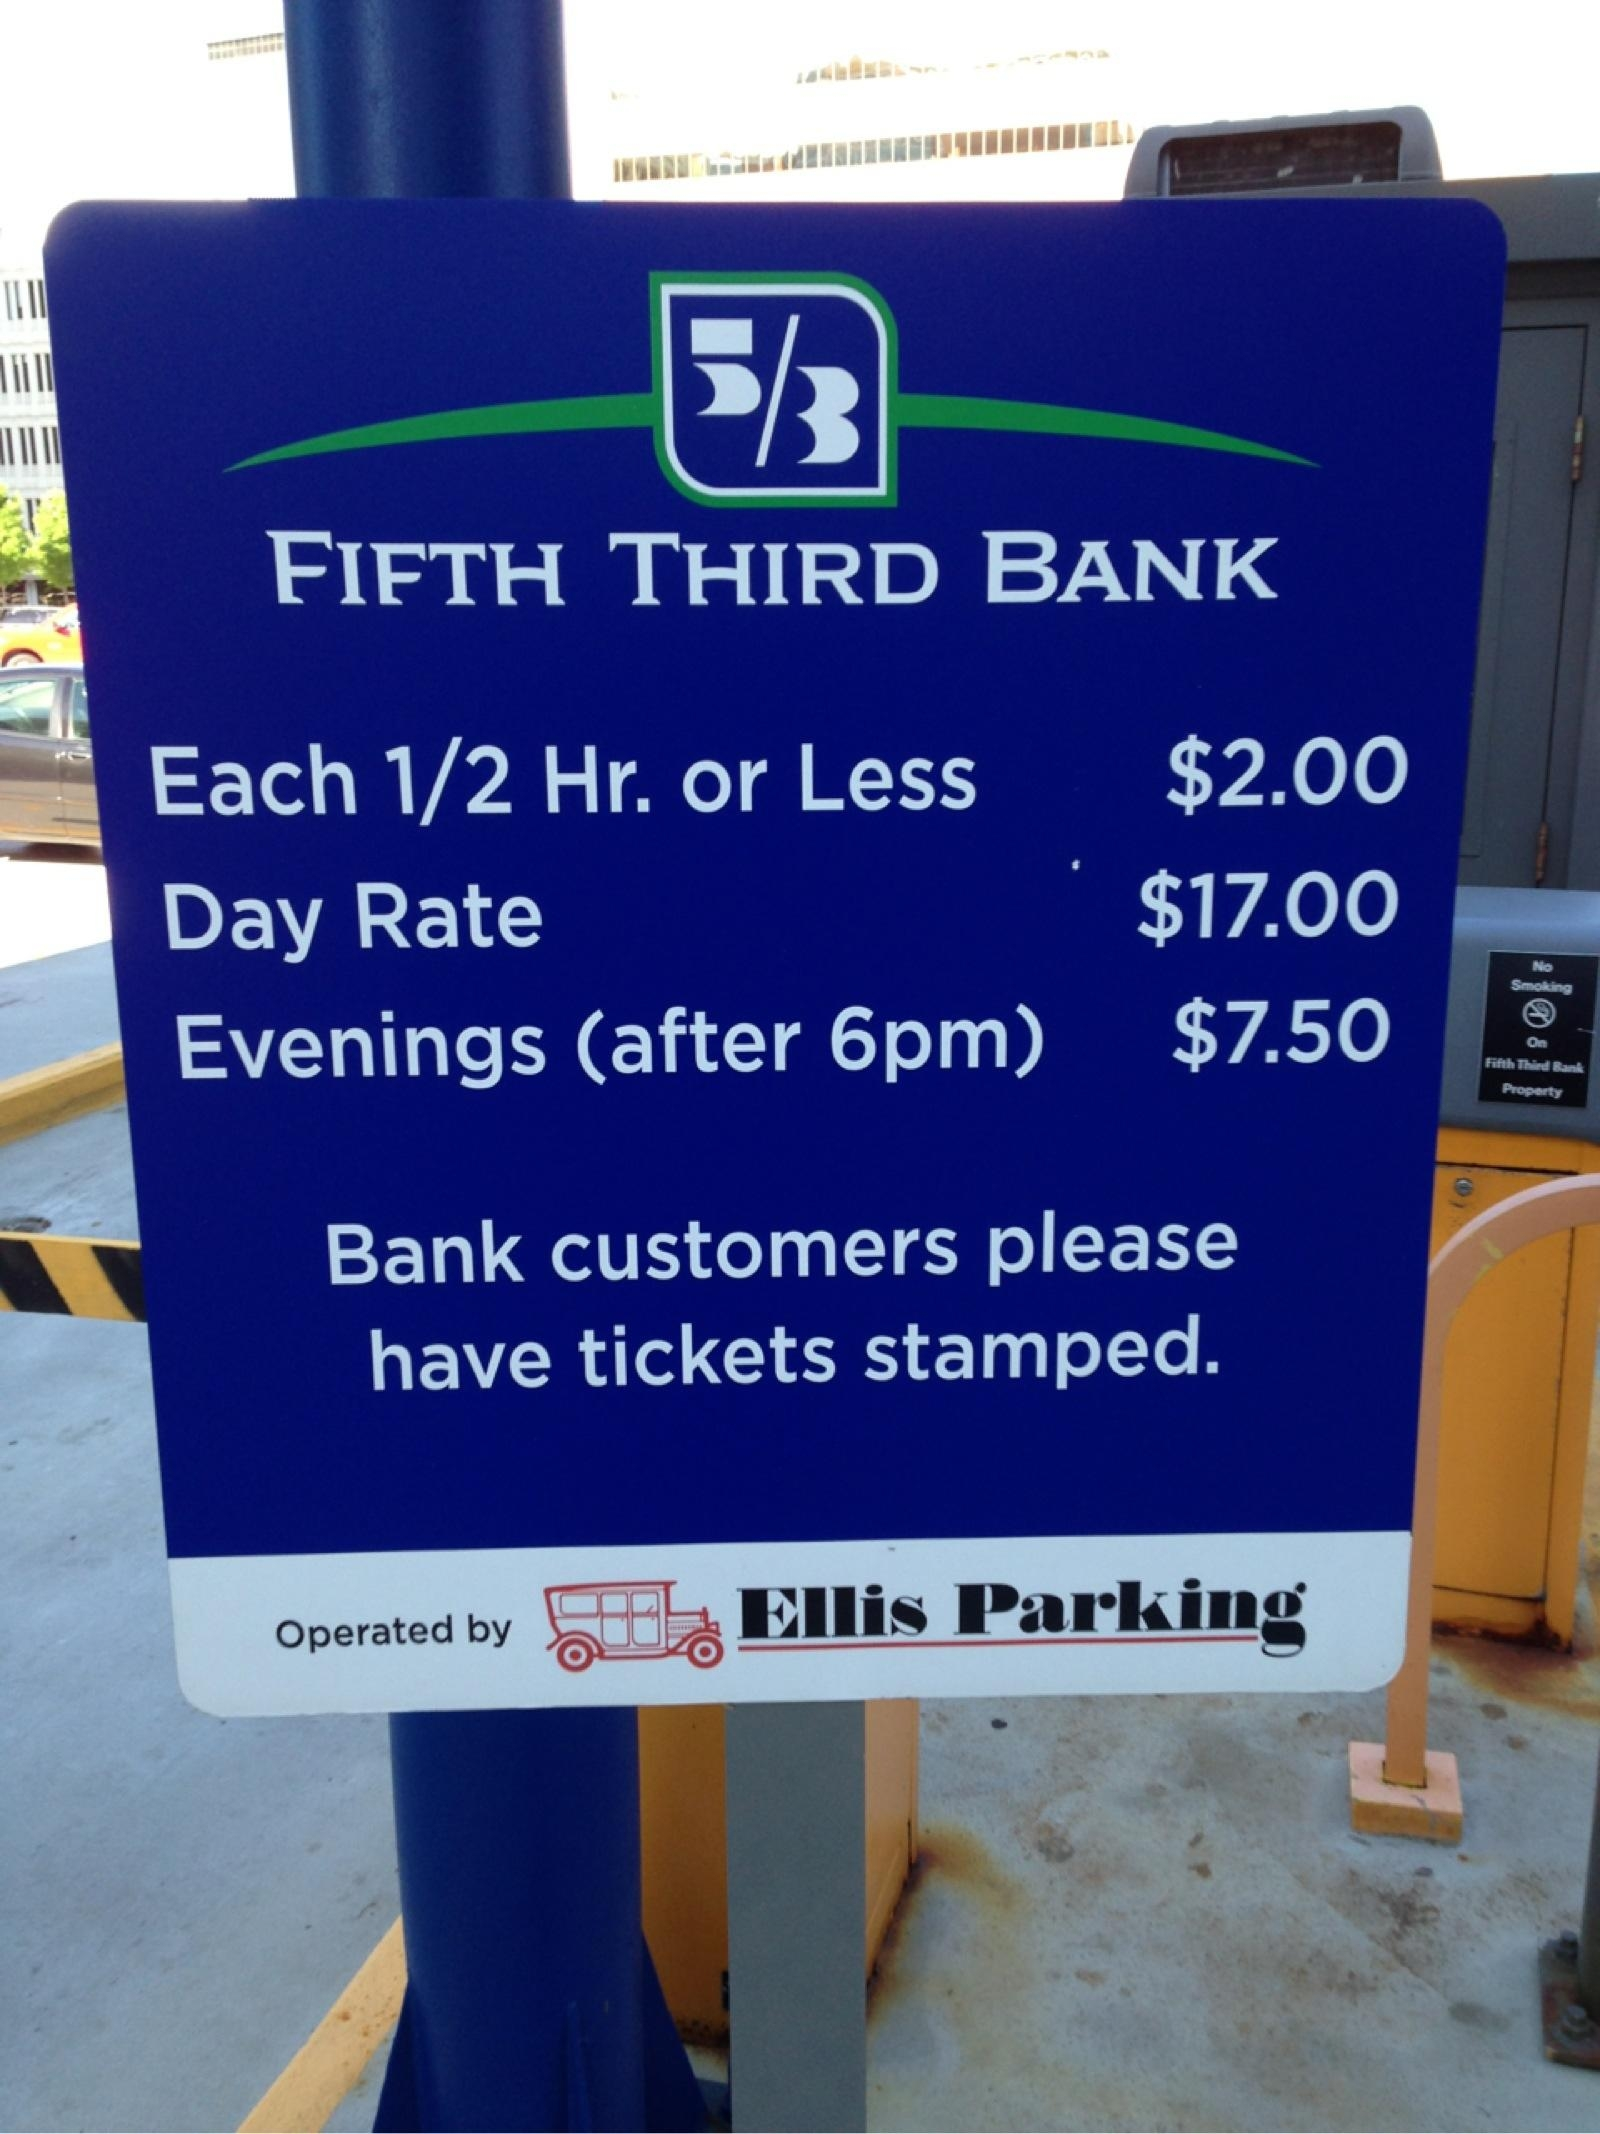 Auto Bill Payer Fifth Third Bank : Fifth third bank parking in grand rapids parkme